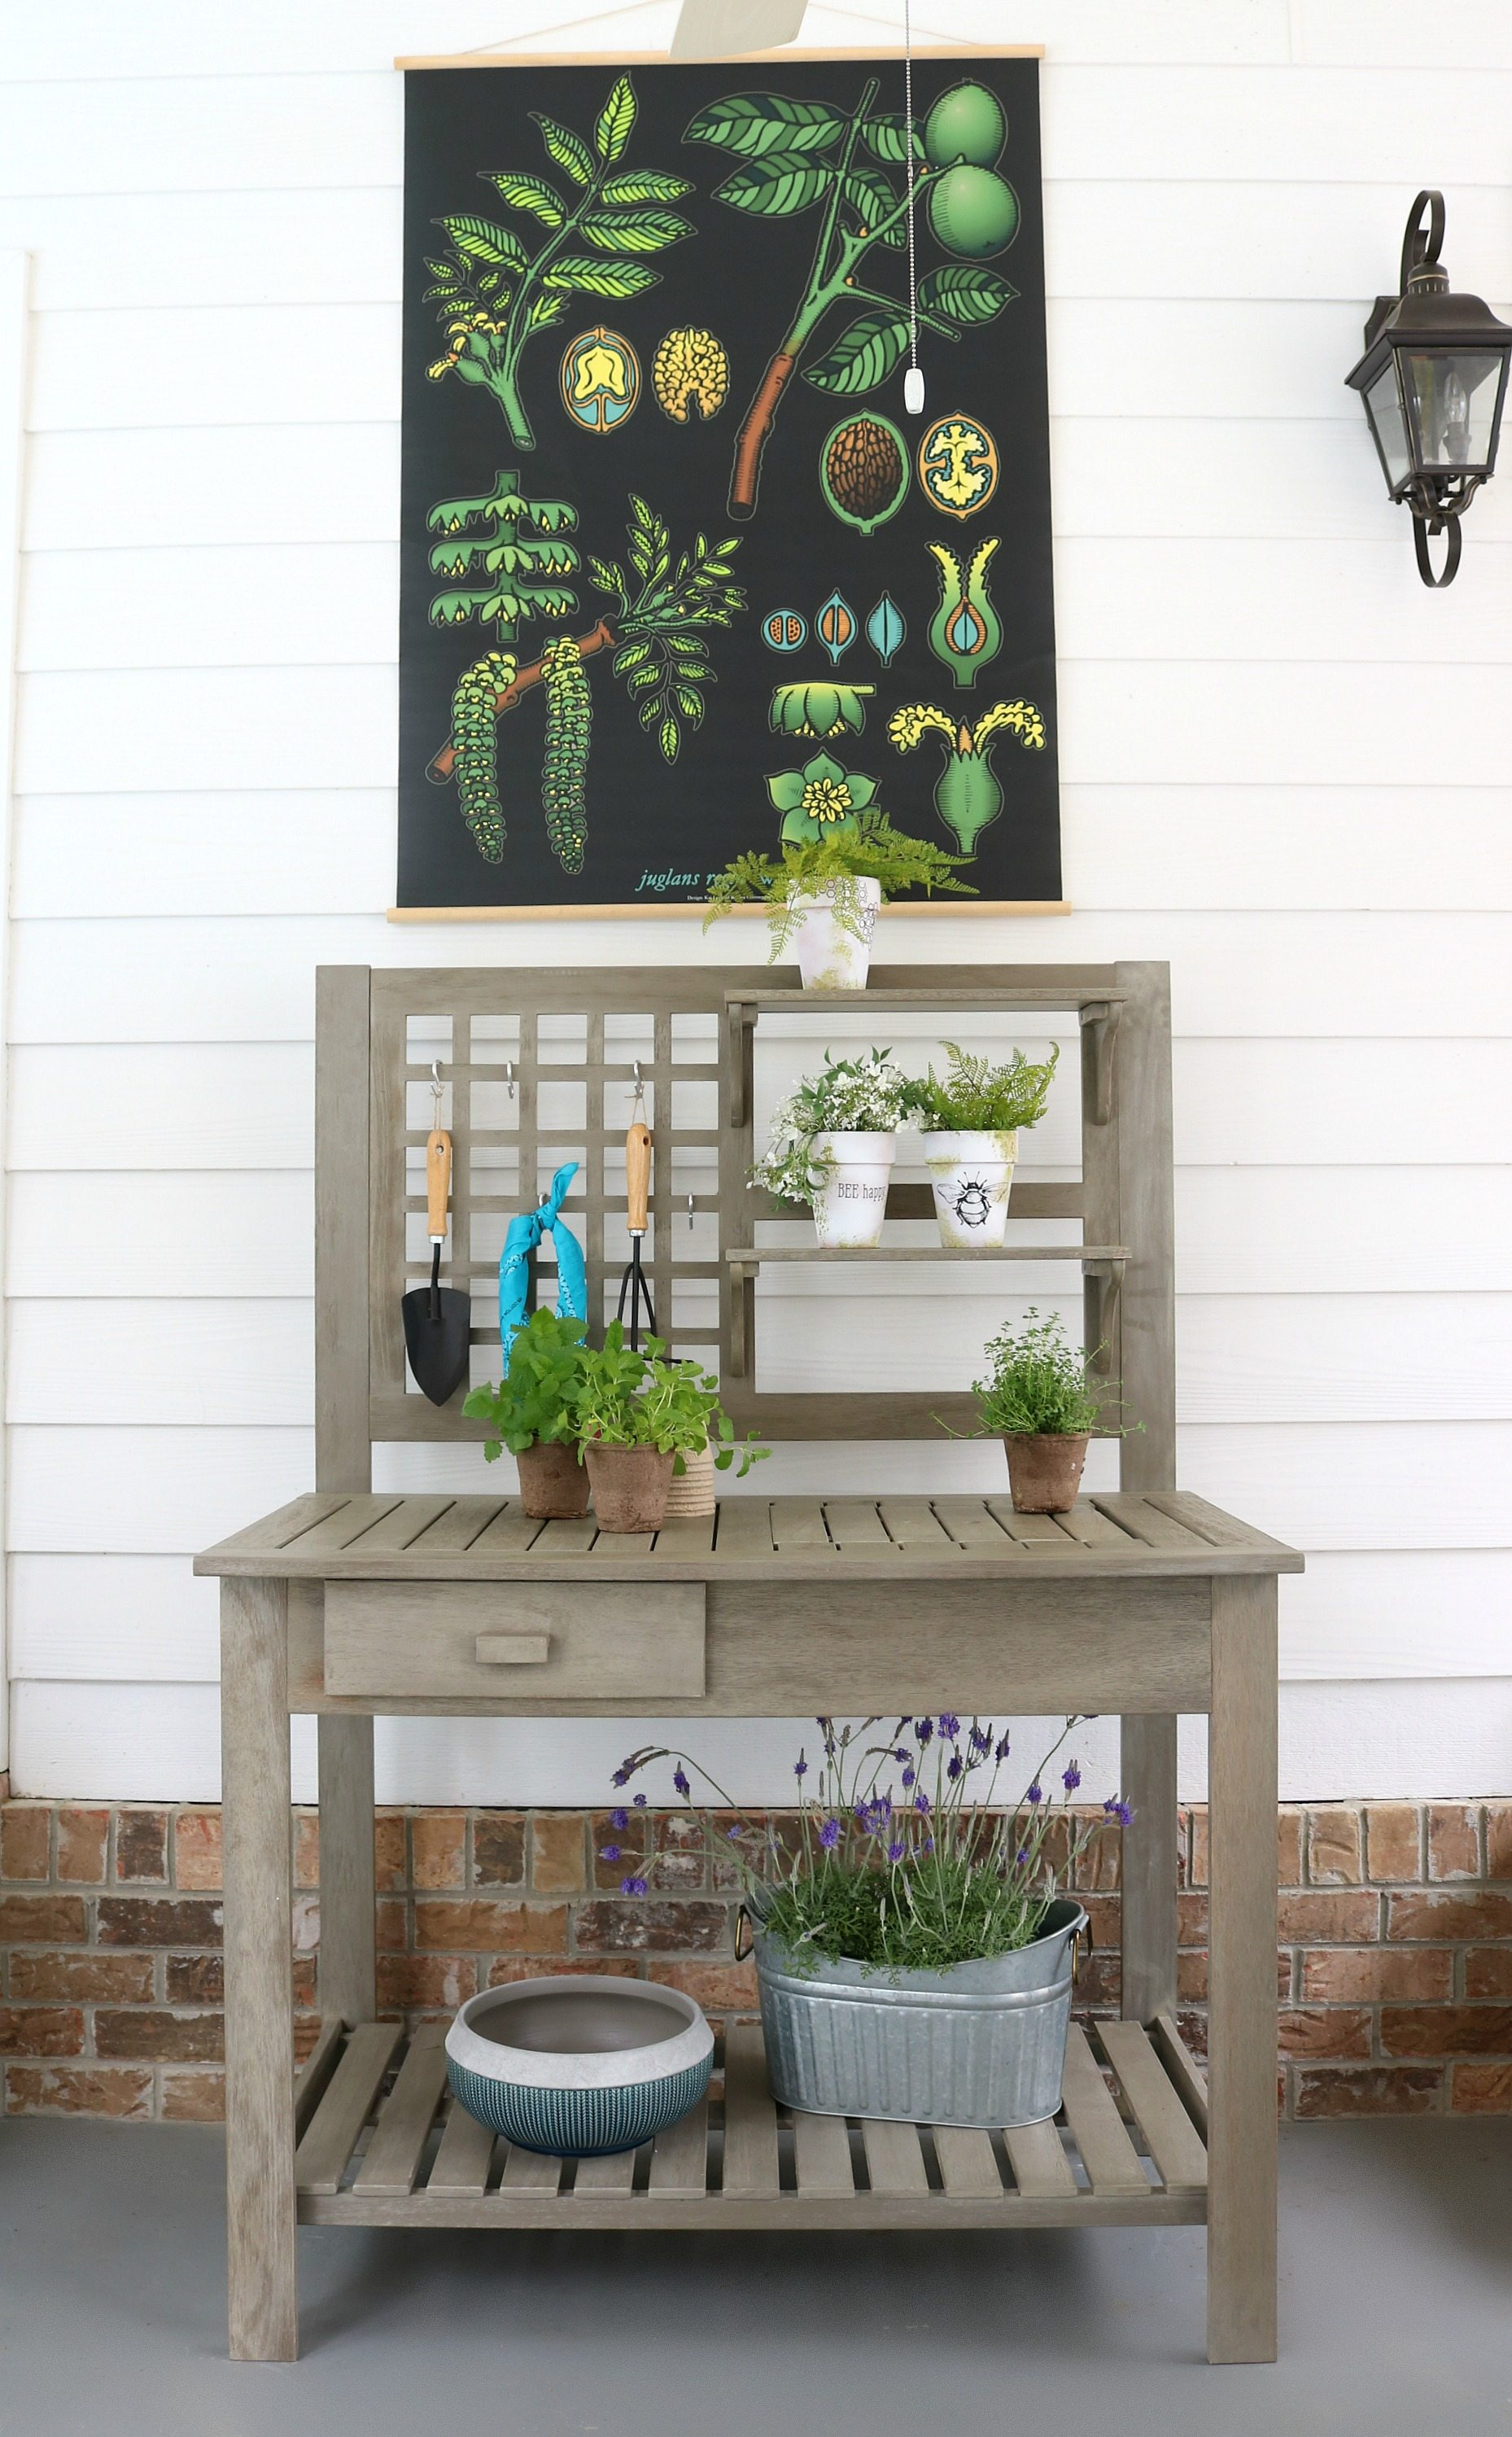 18 DIY Spring Home Ideas!  Potting Bench DIY. sSimple wood farmhouse bench with a place t hang tools and shelves for plants.